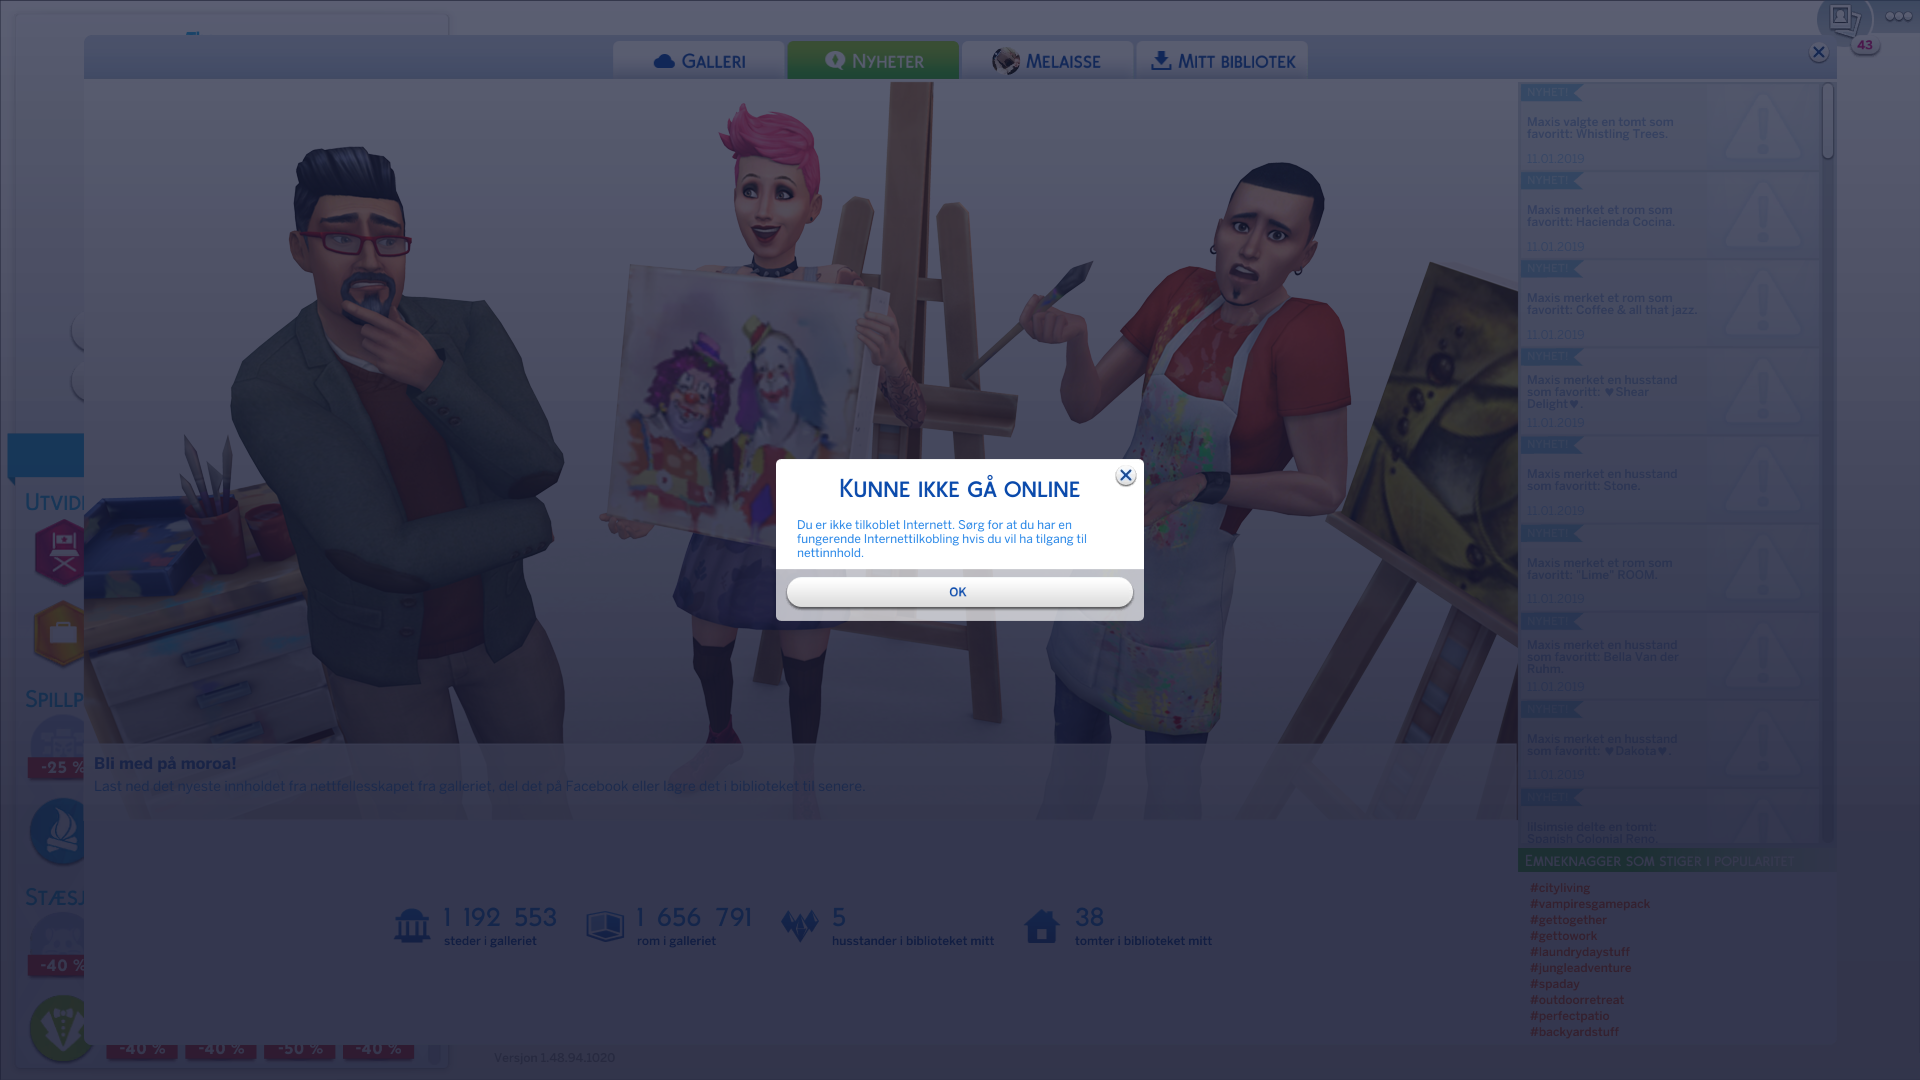 The sims 4: Gallery wont connect to the internet - Answer HQ